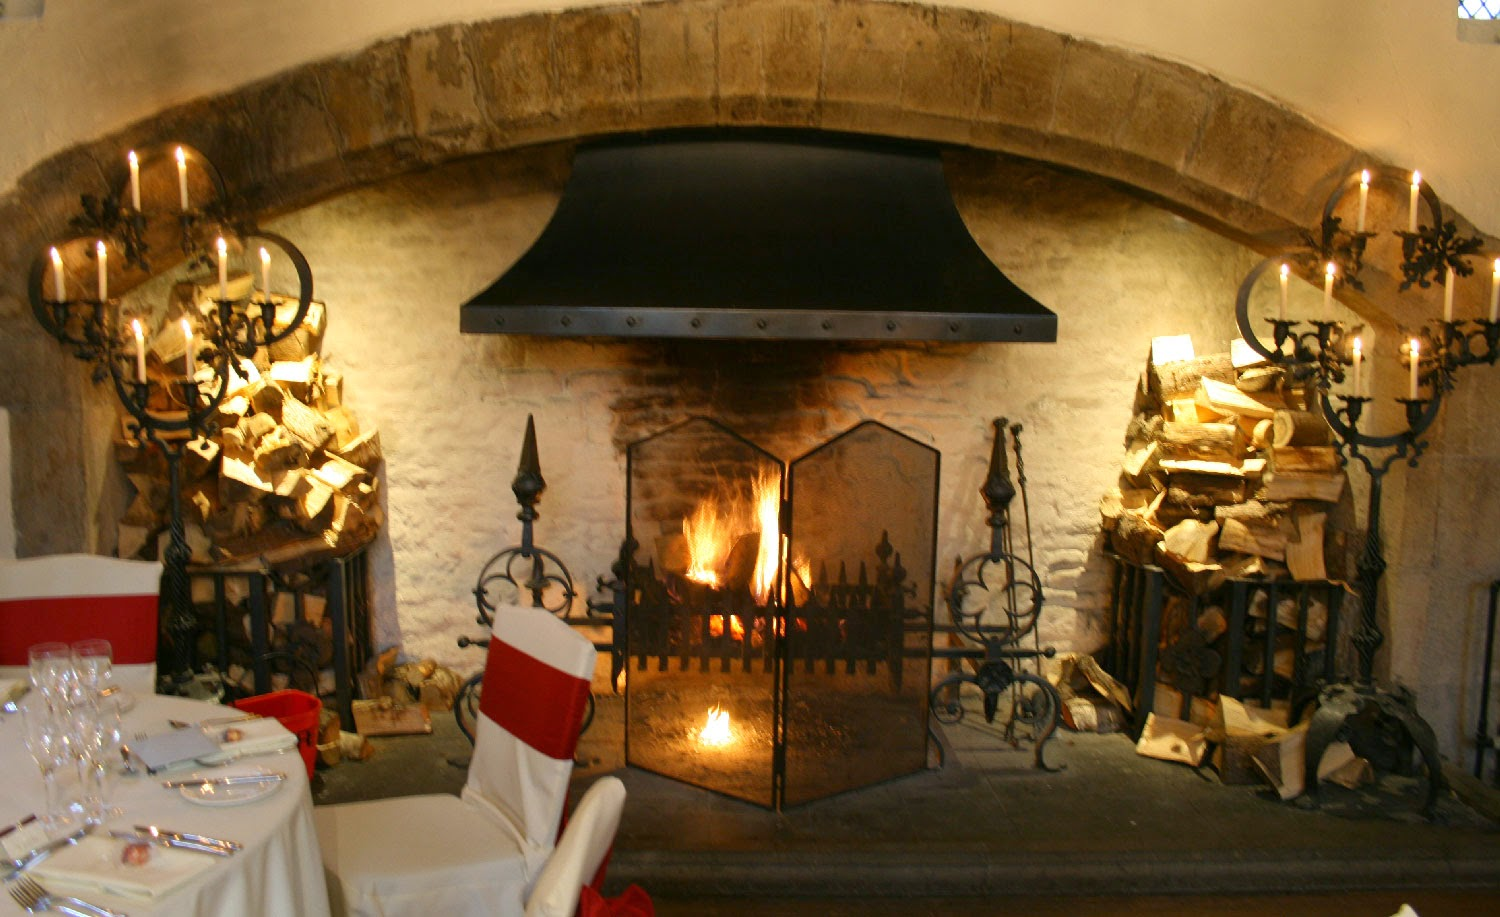 Blazing fire in the impressive fireplace